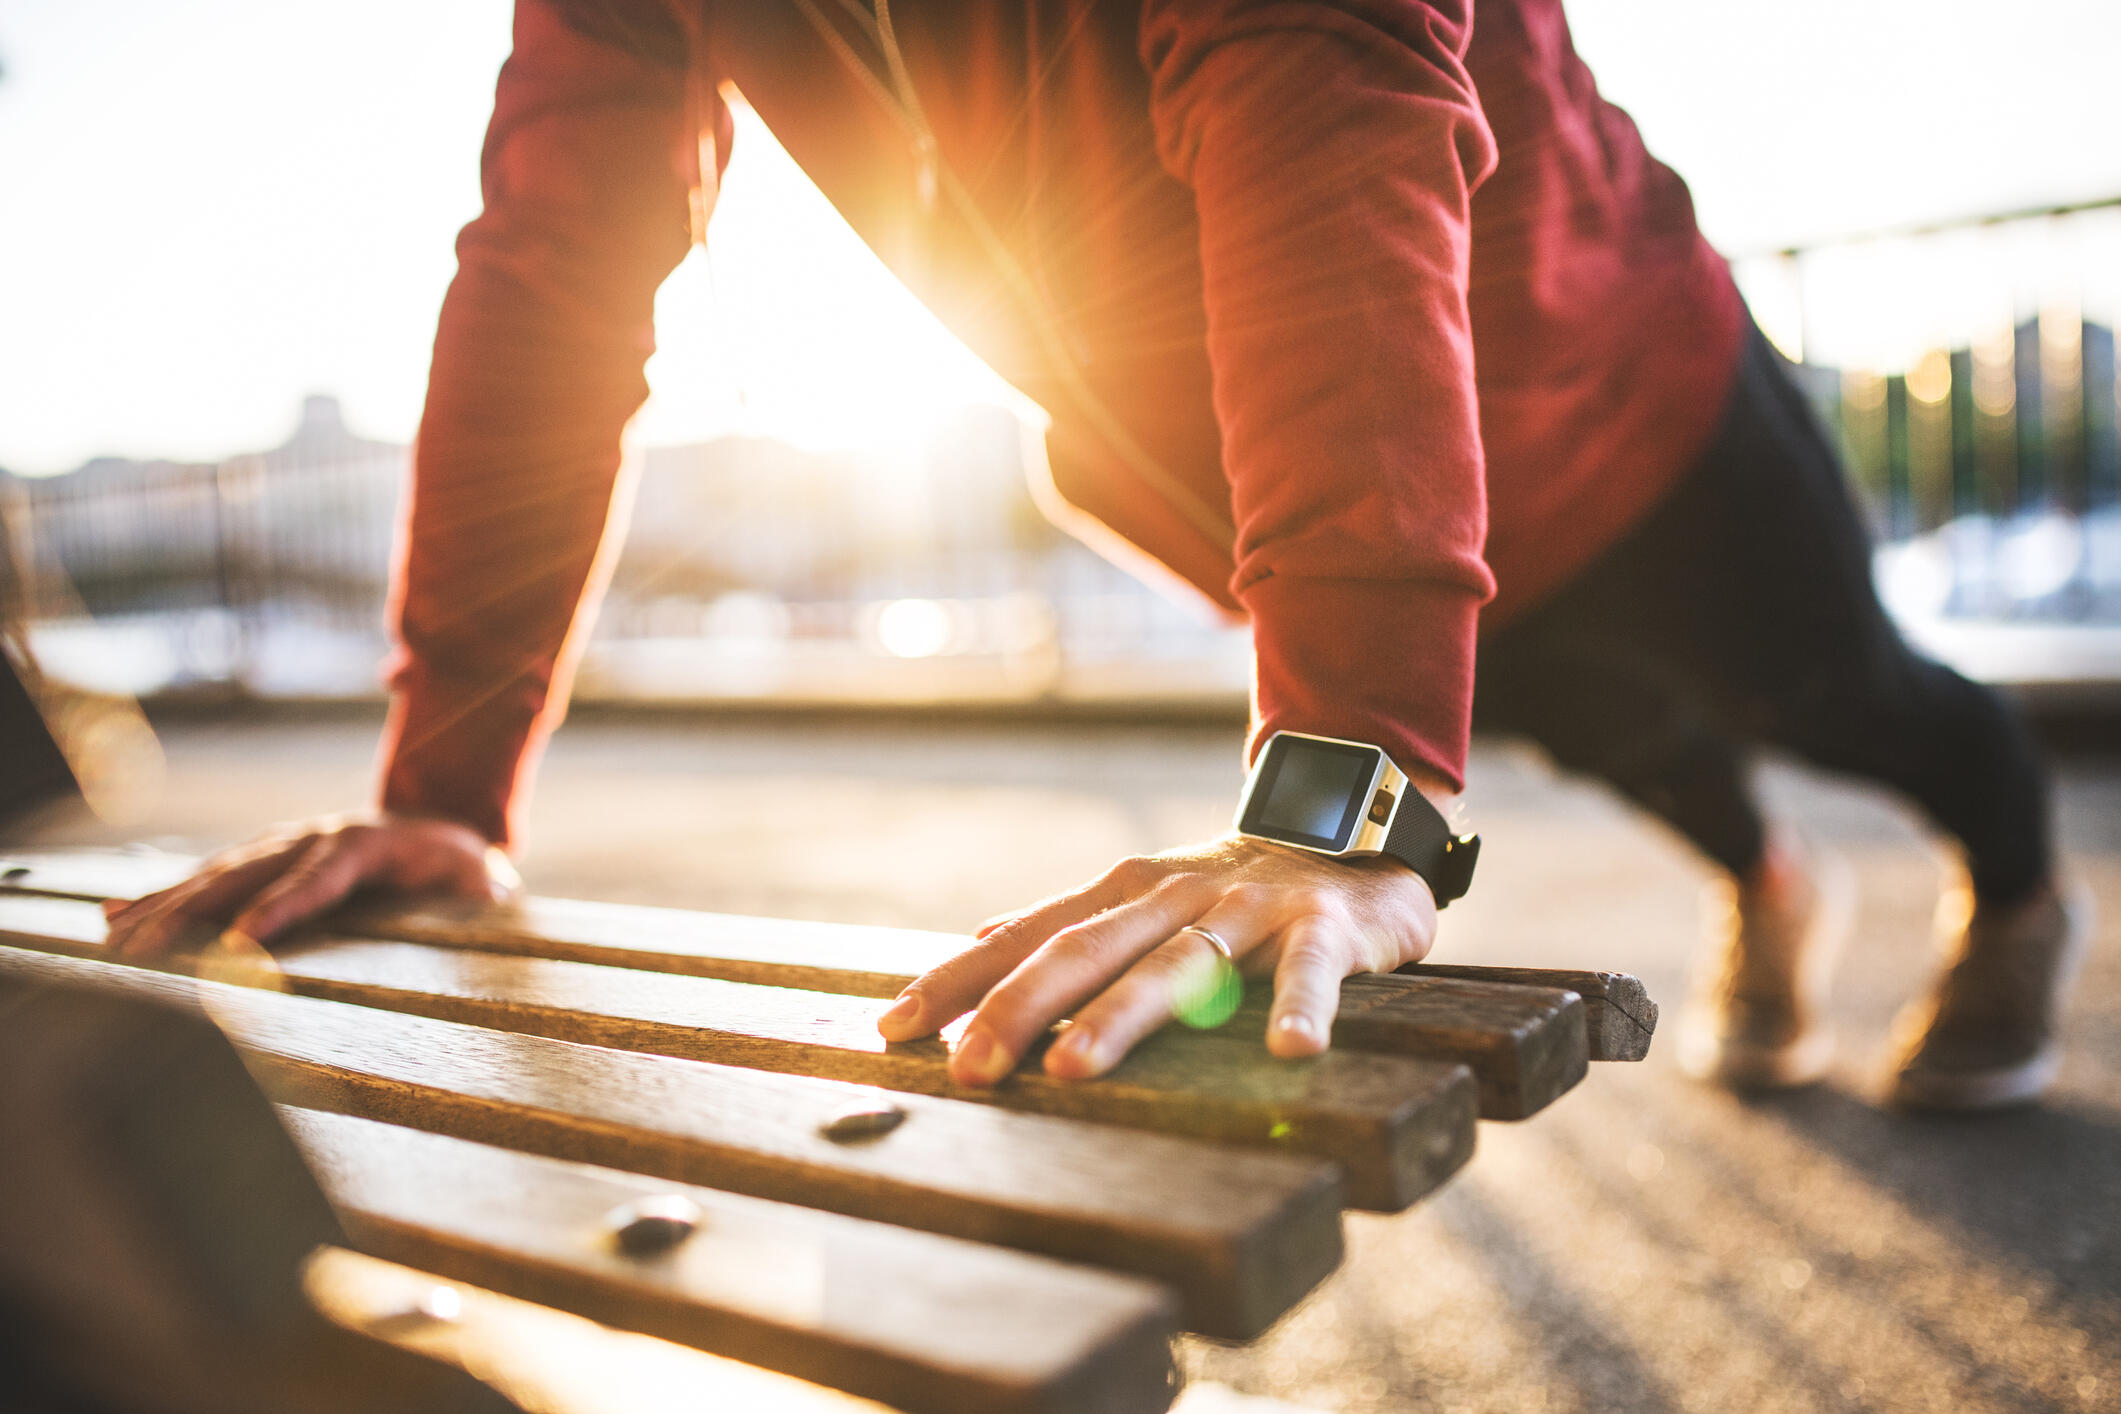 A man in a red shirt with a fitness watch on, doing push-ups on a park bench at sunset.